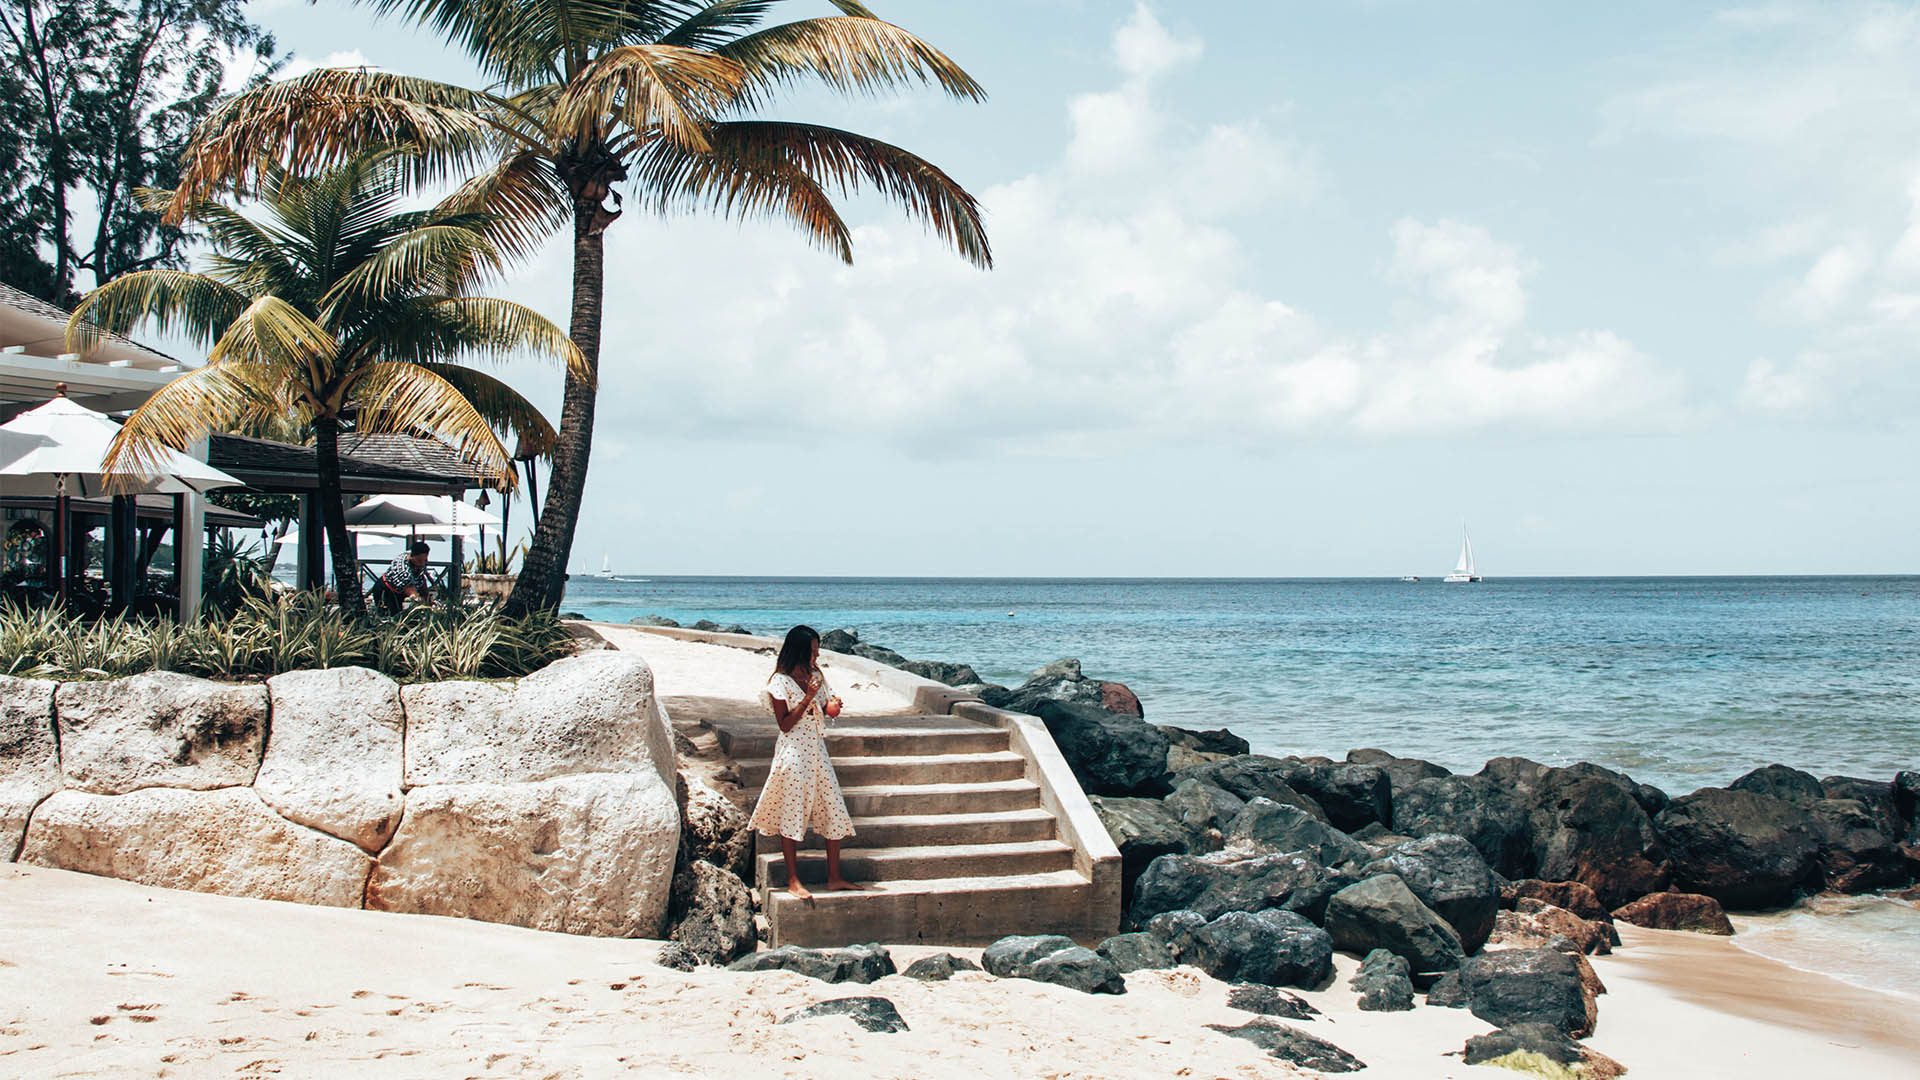 4 winter sun hotspots for end of year escapes